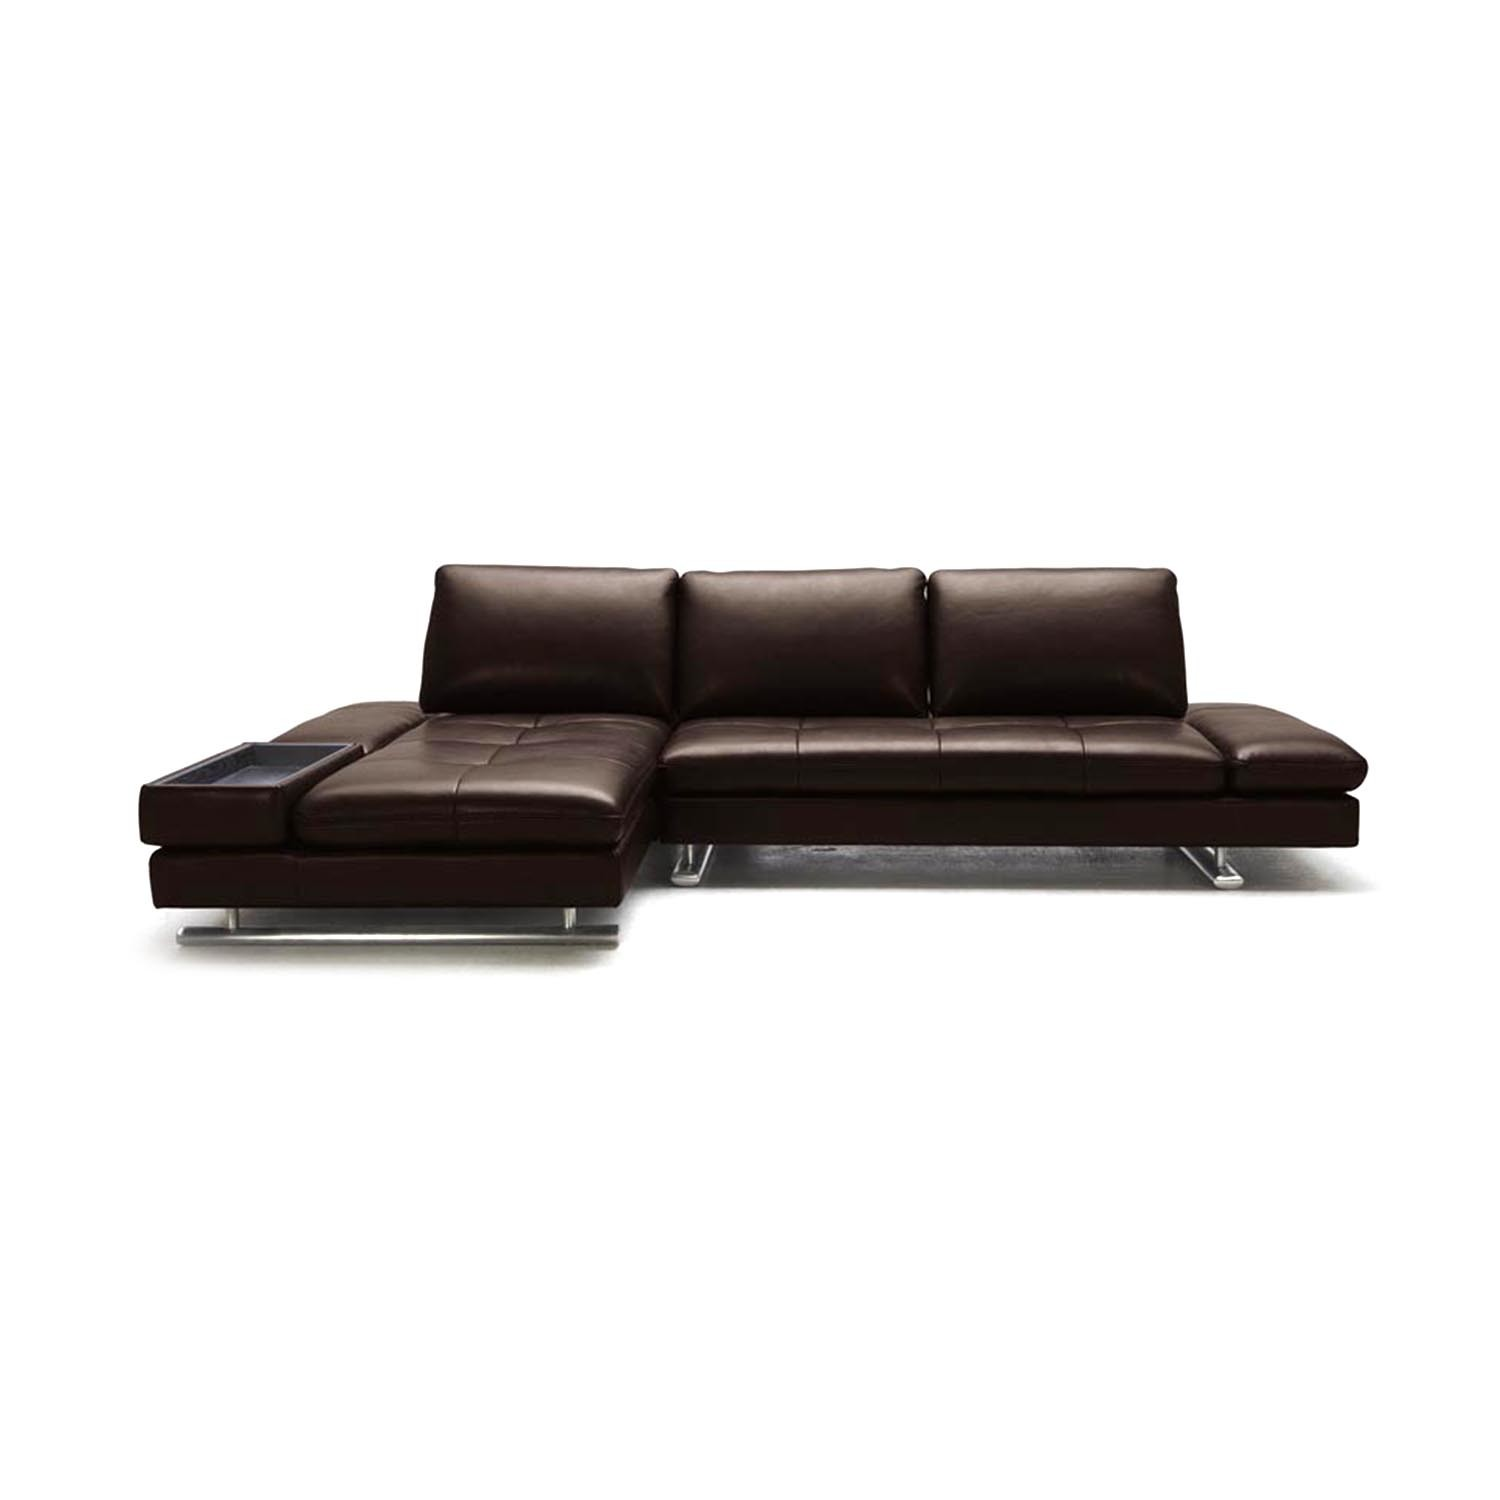 Ritz sectional sofa left chaise zuri furniture for Chaise furniture sale